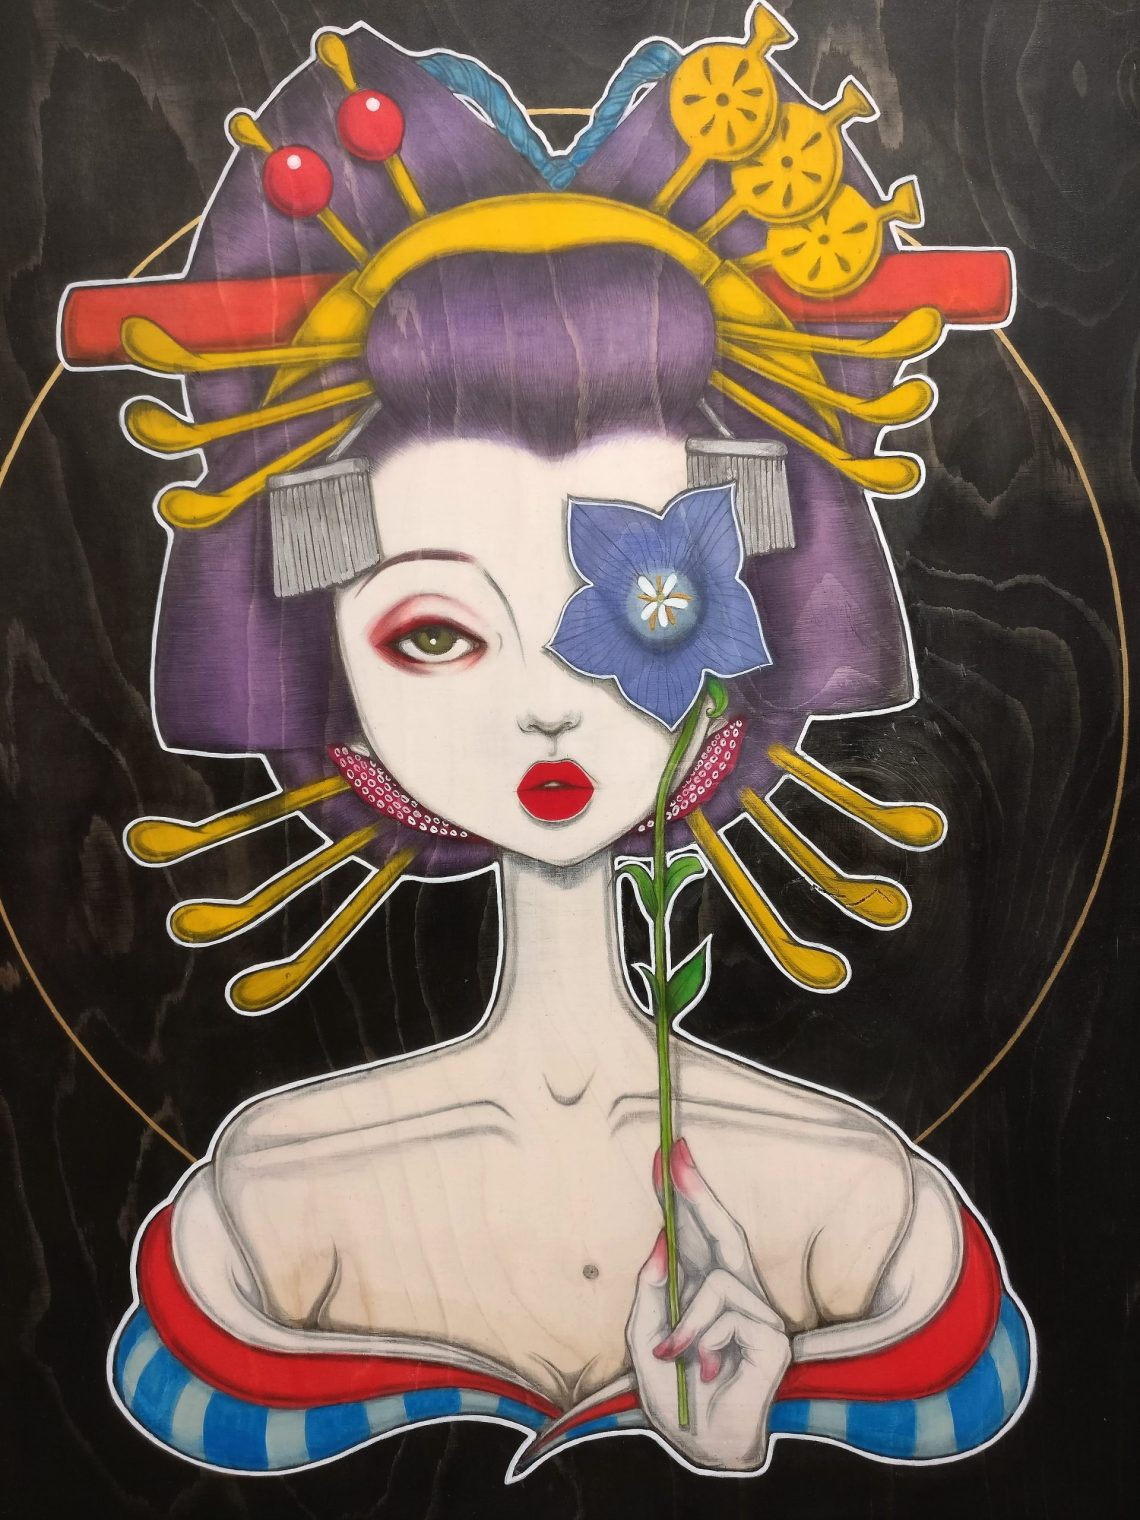 A painting by Saki & Bitches from Hana Machi